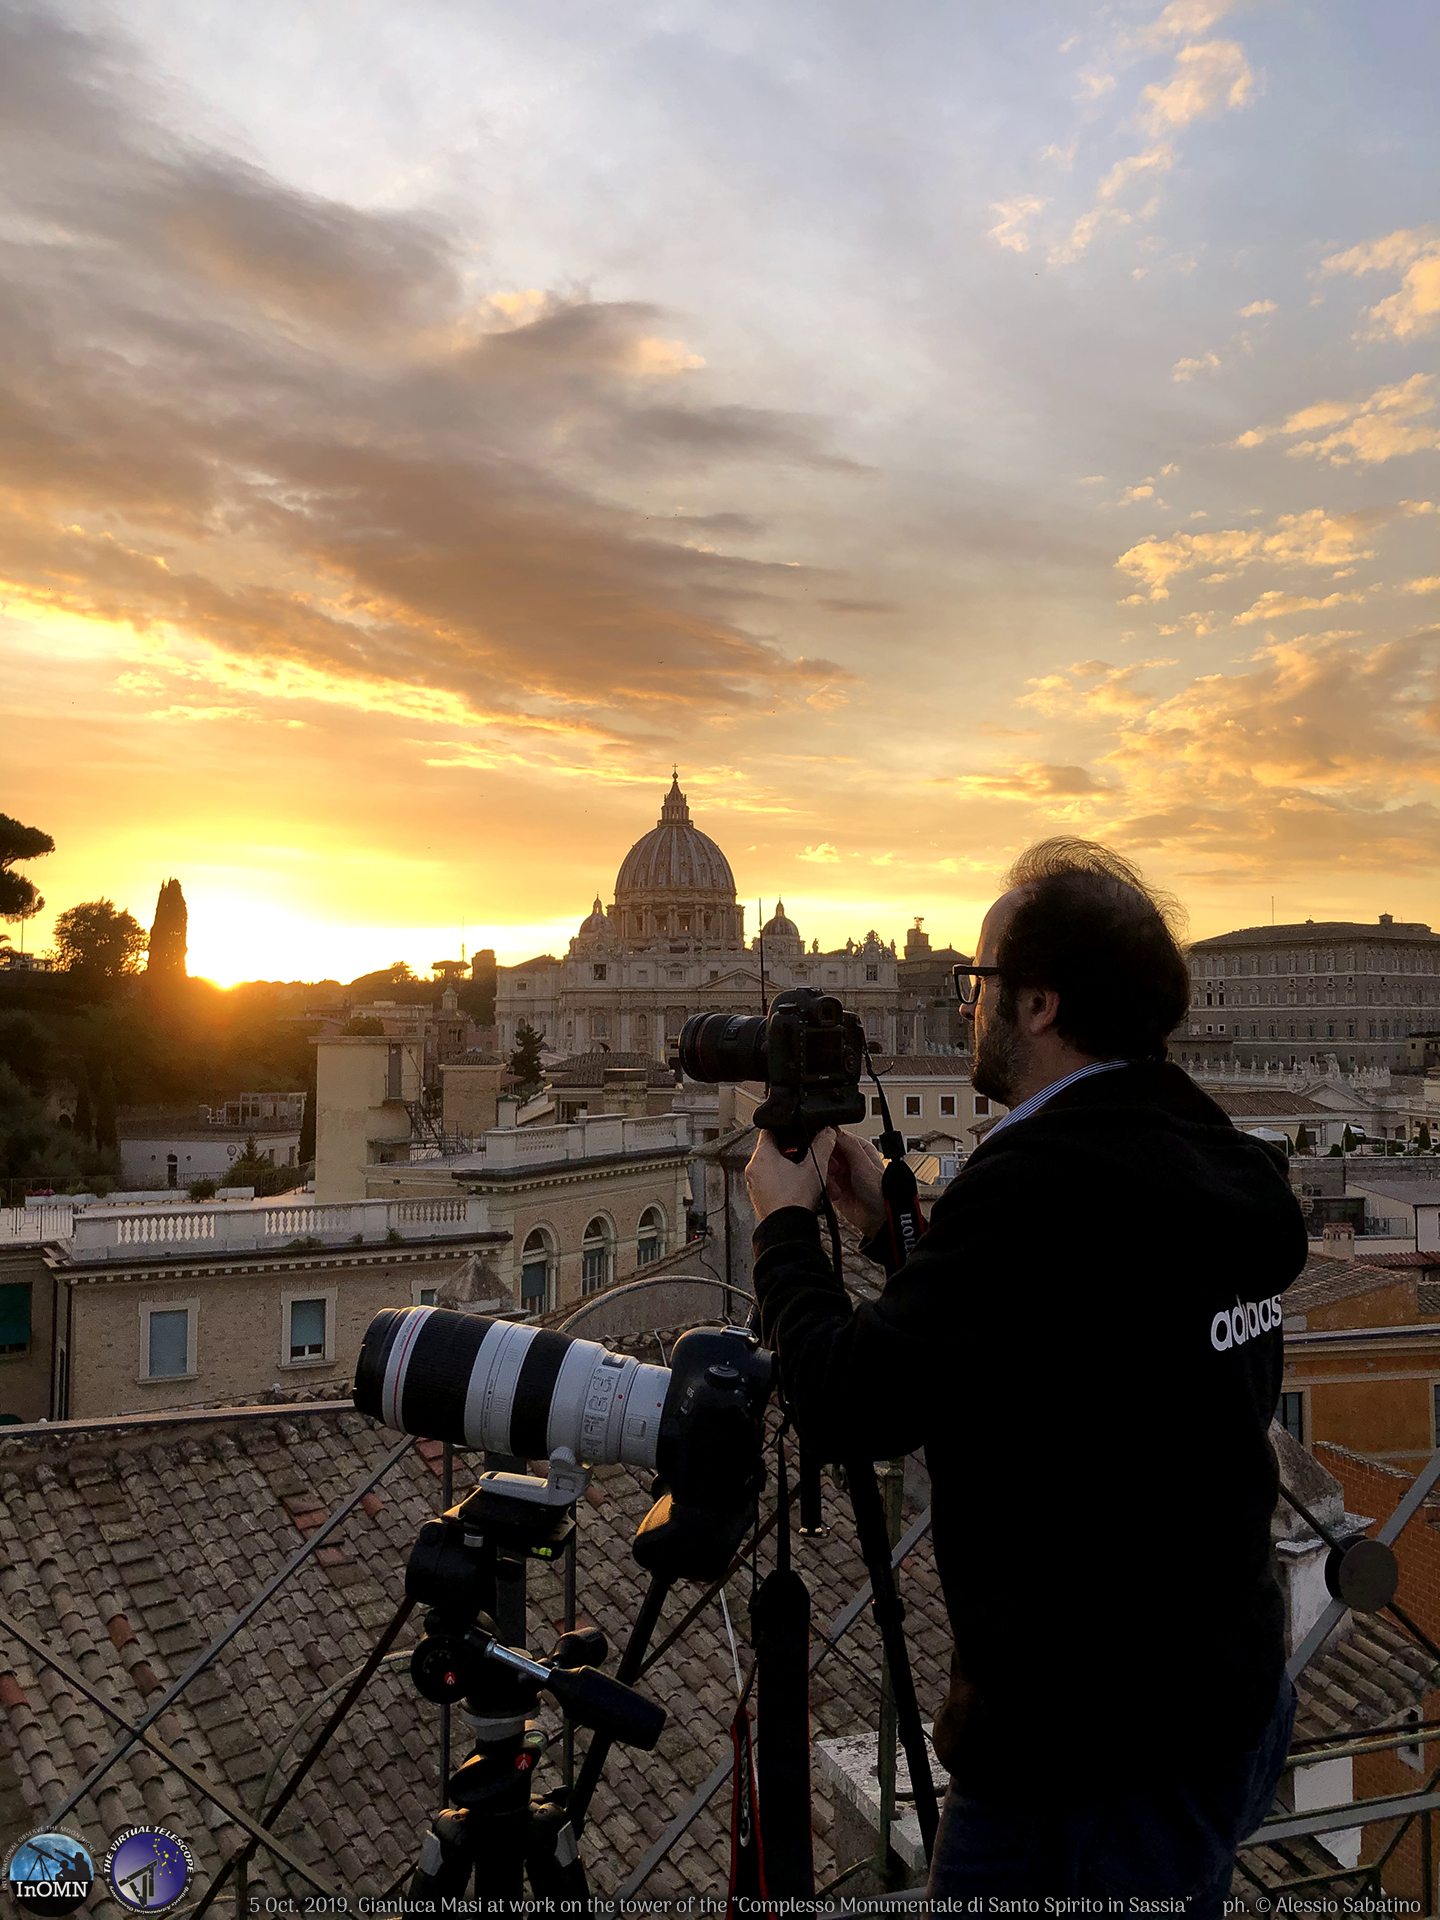 Super sunset while ready to start the live feed. Ph. Alessio Sabatino